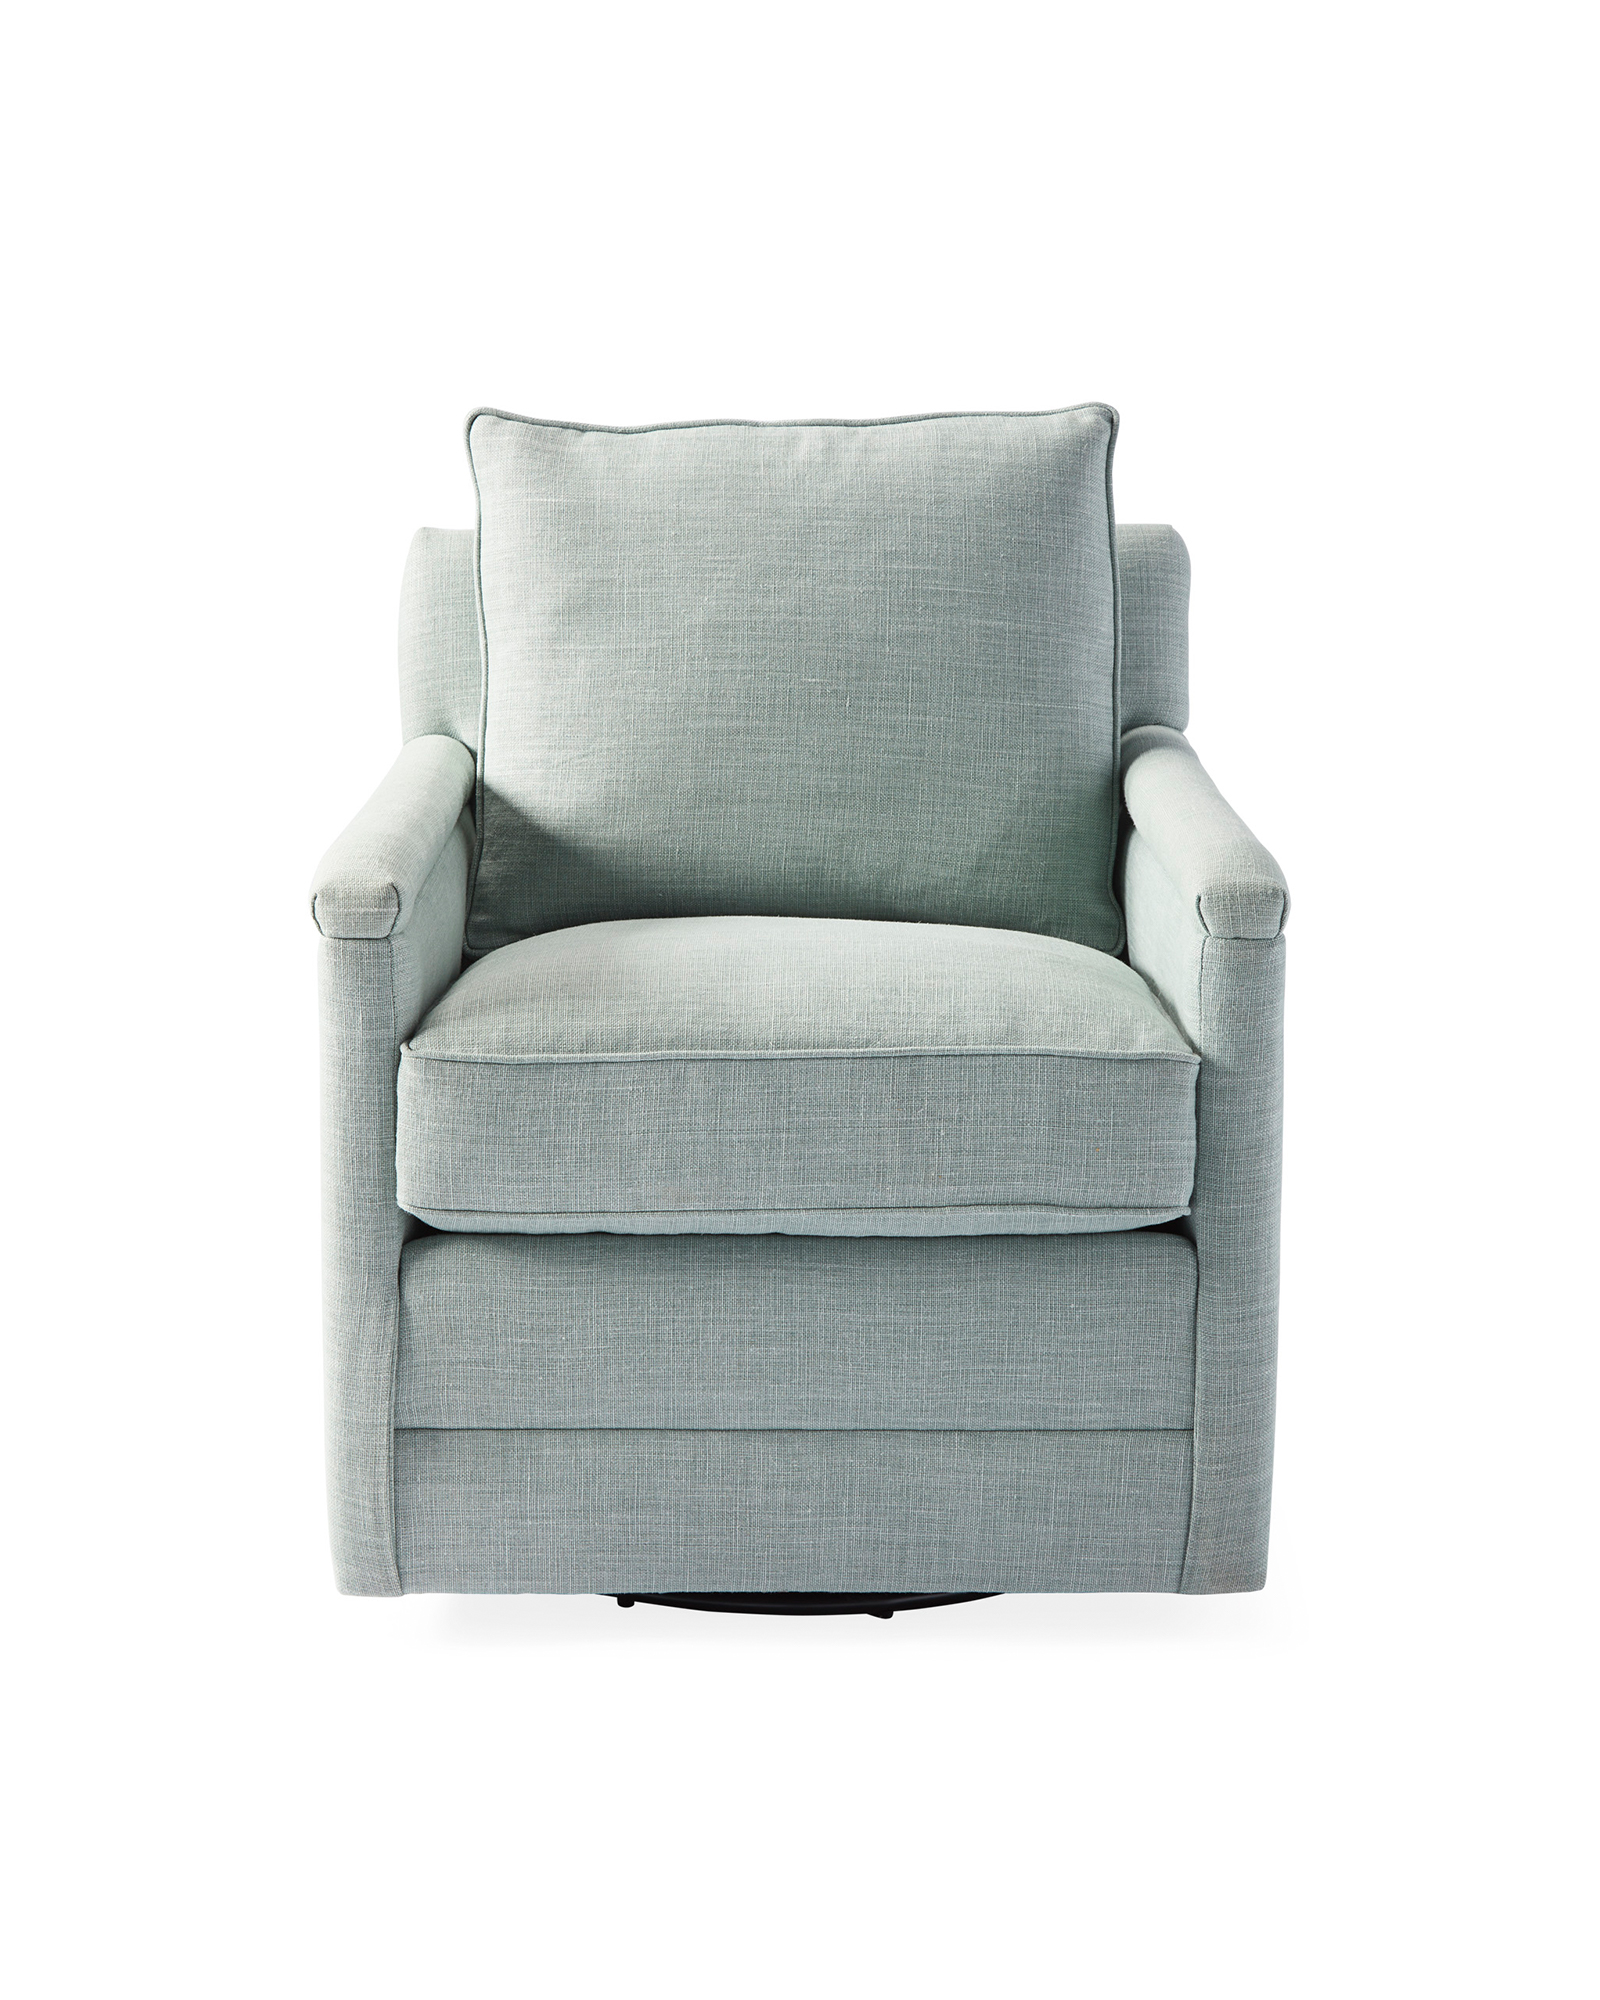 Spruce Street Swivel Chair - Seaglass Washed Linen,